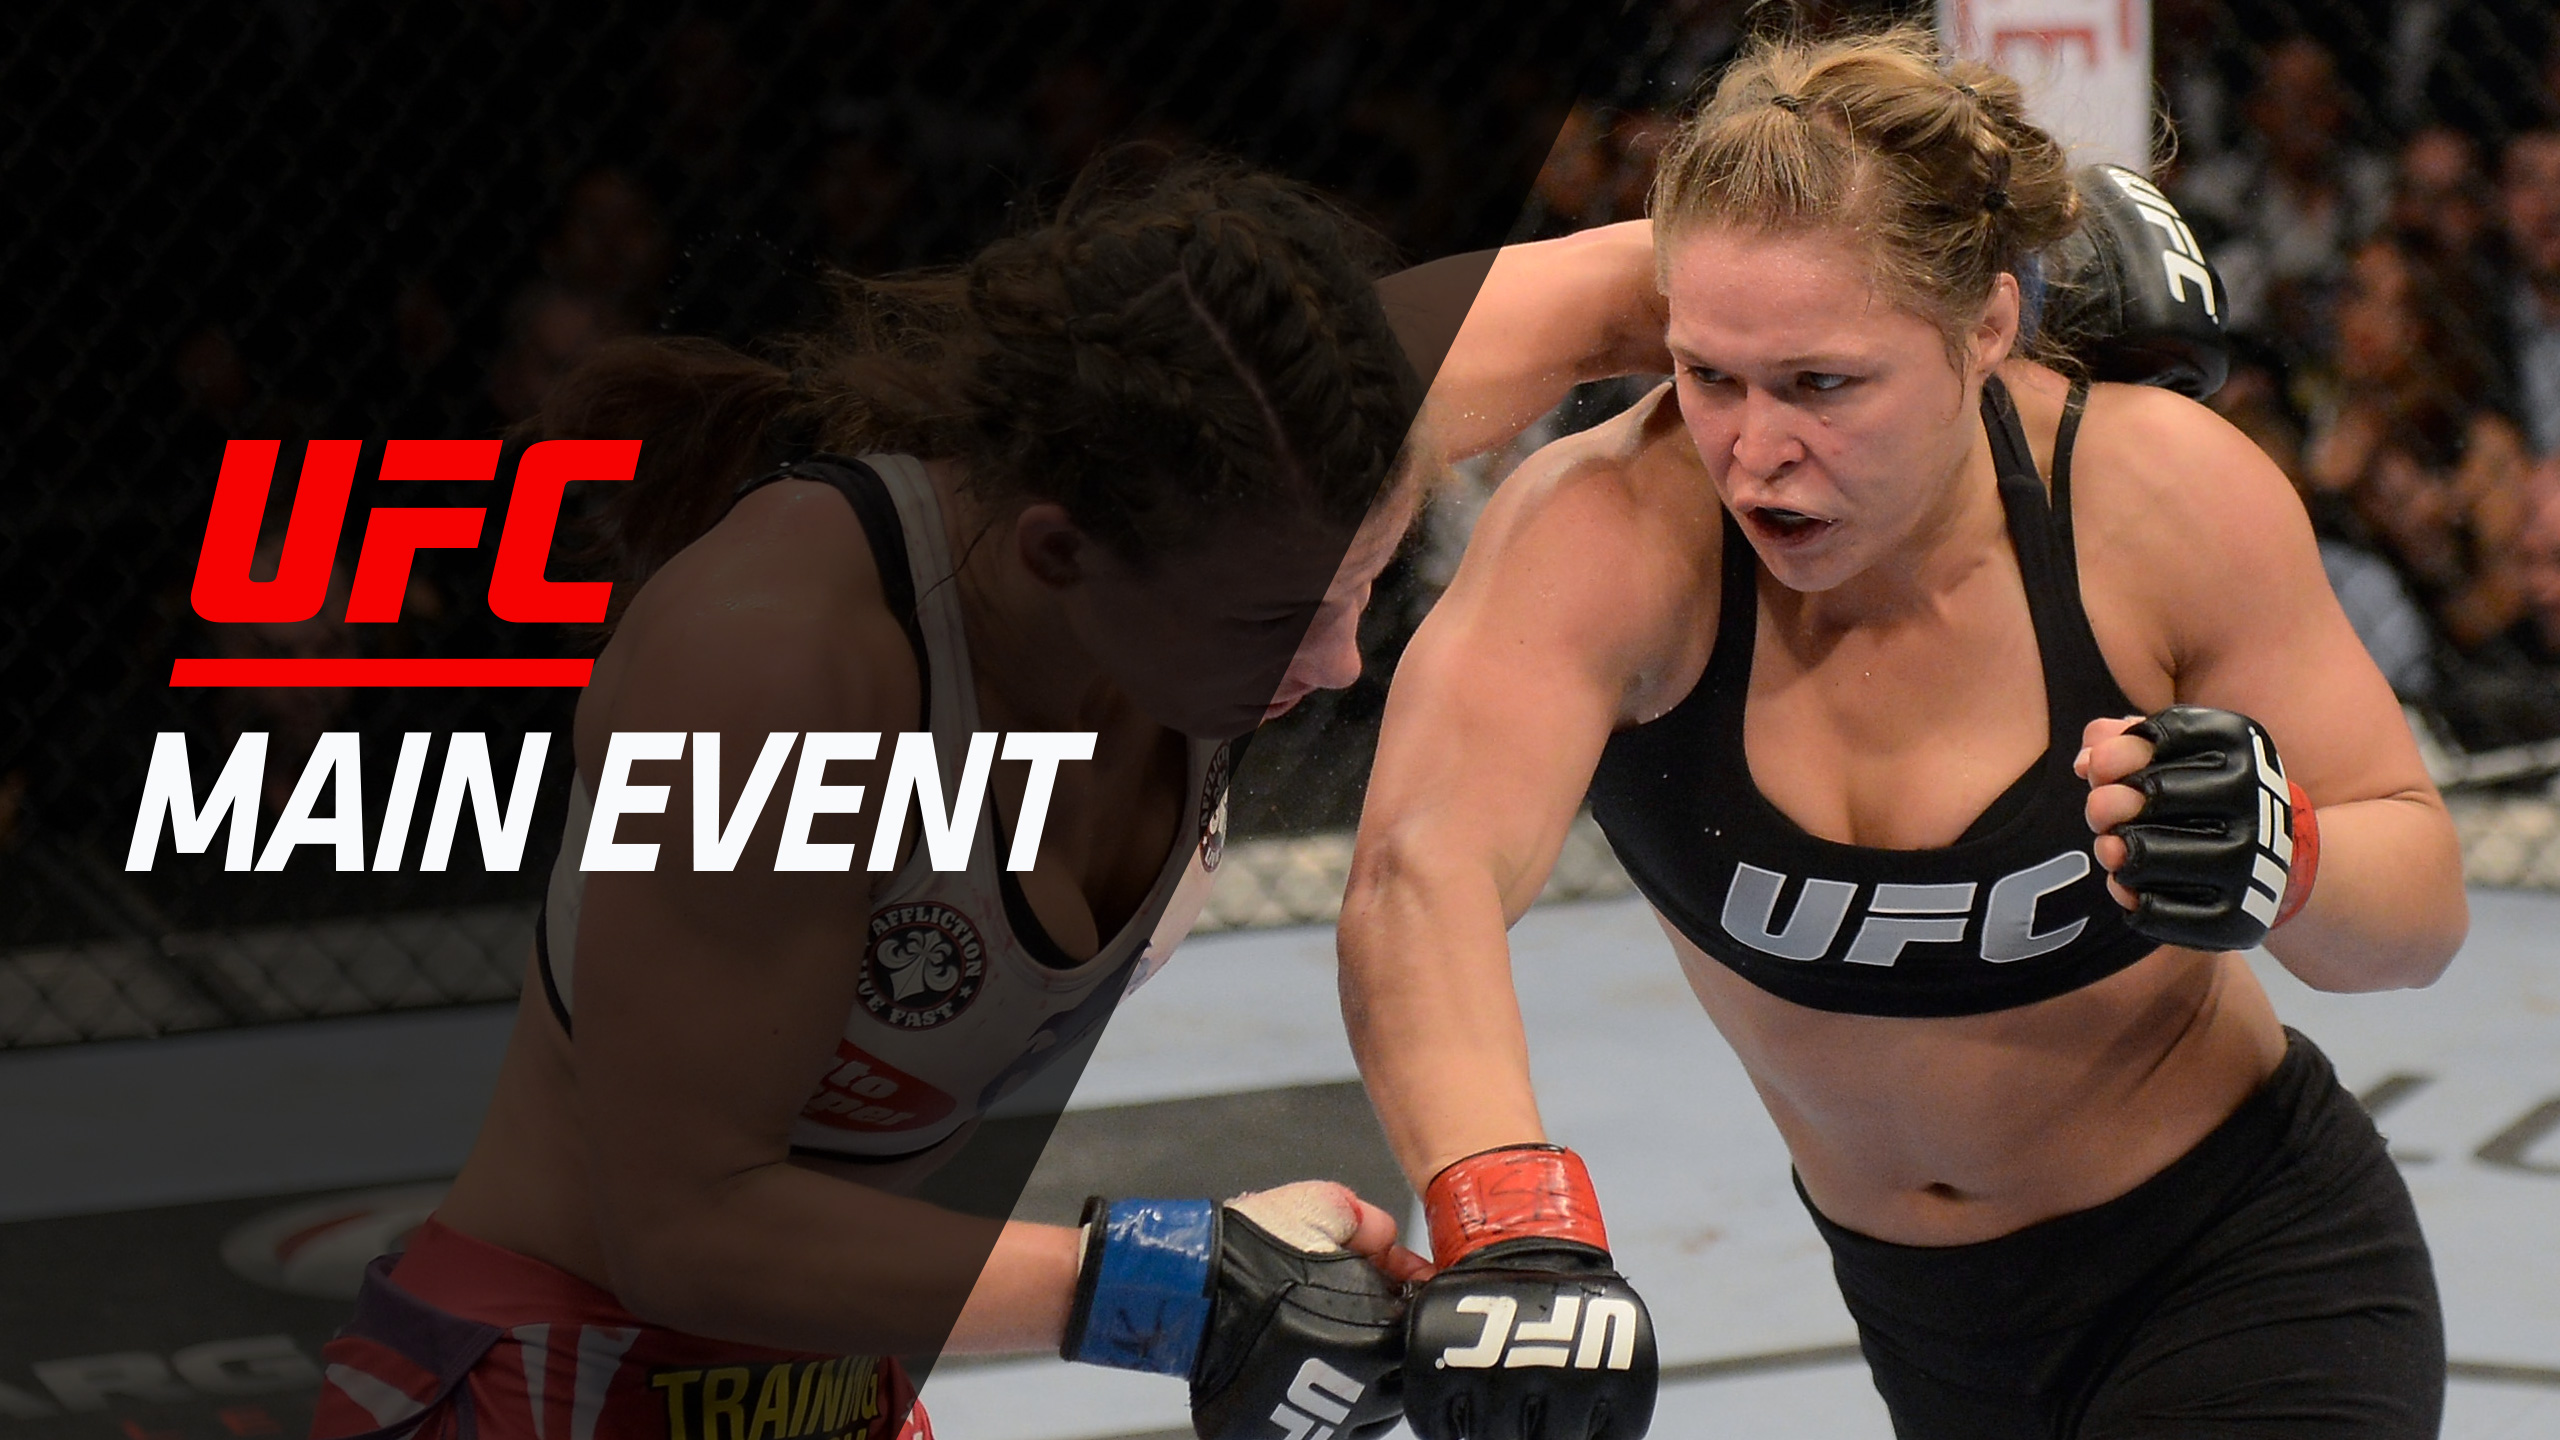 UFC Main Event: Rousey vs. Tate 2